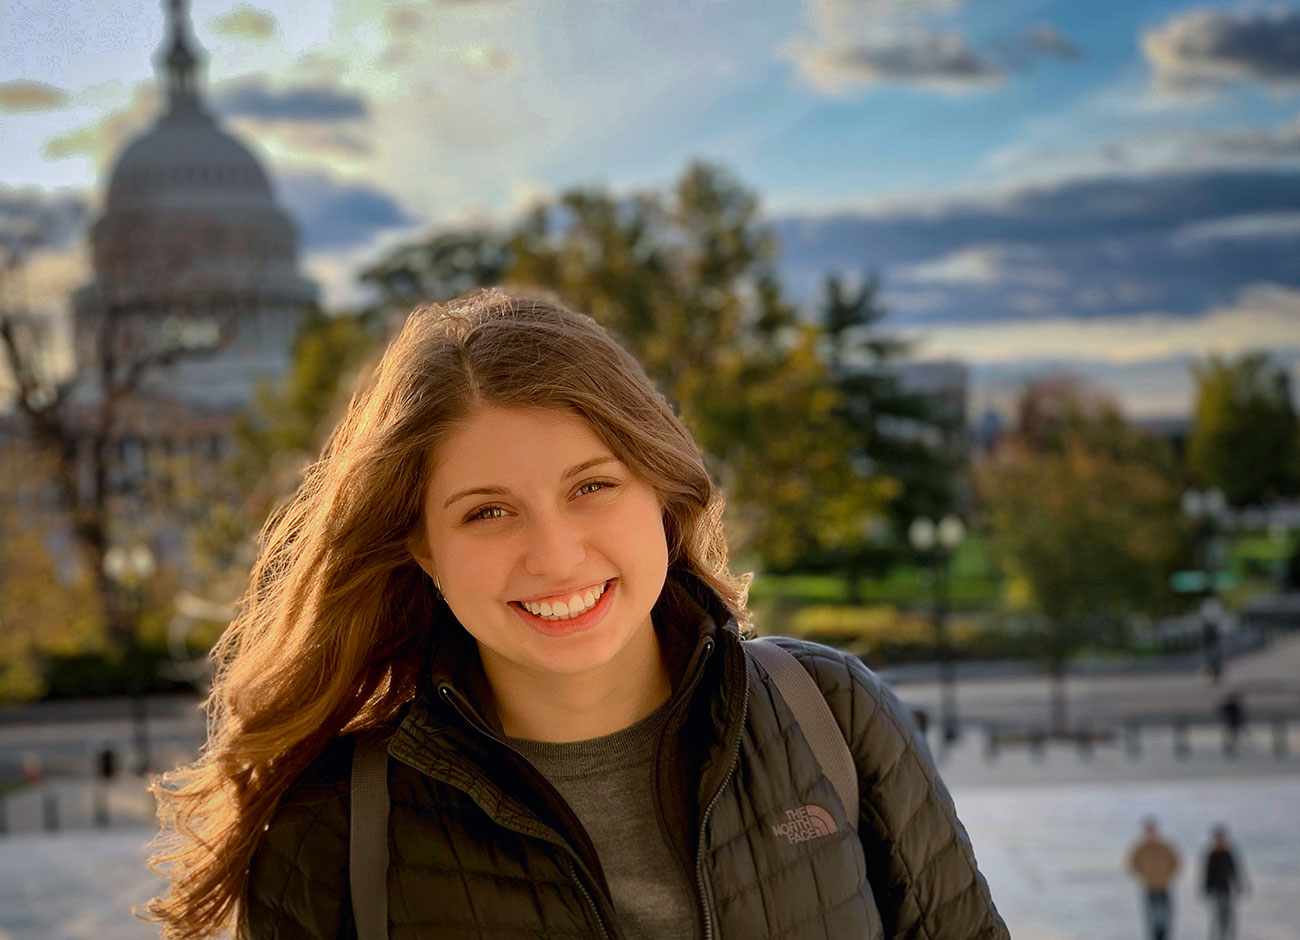 a young woman smiles while standing in front of the U.S. capitol building